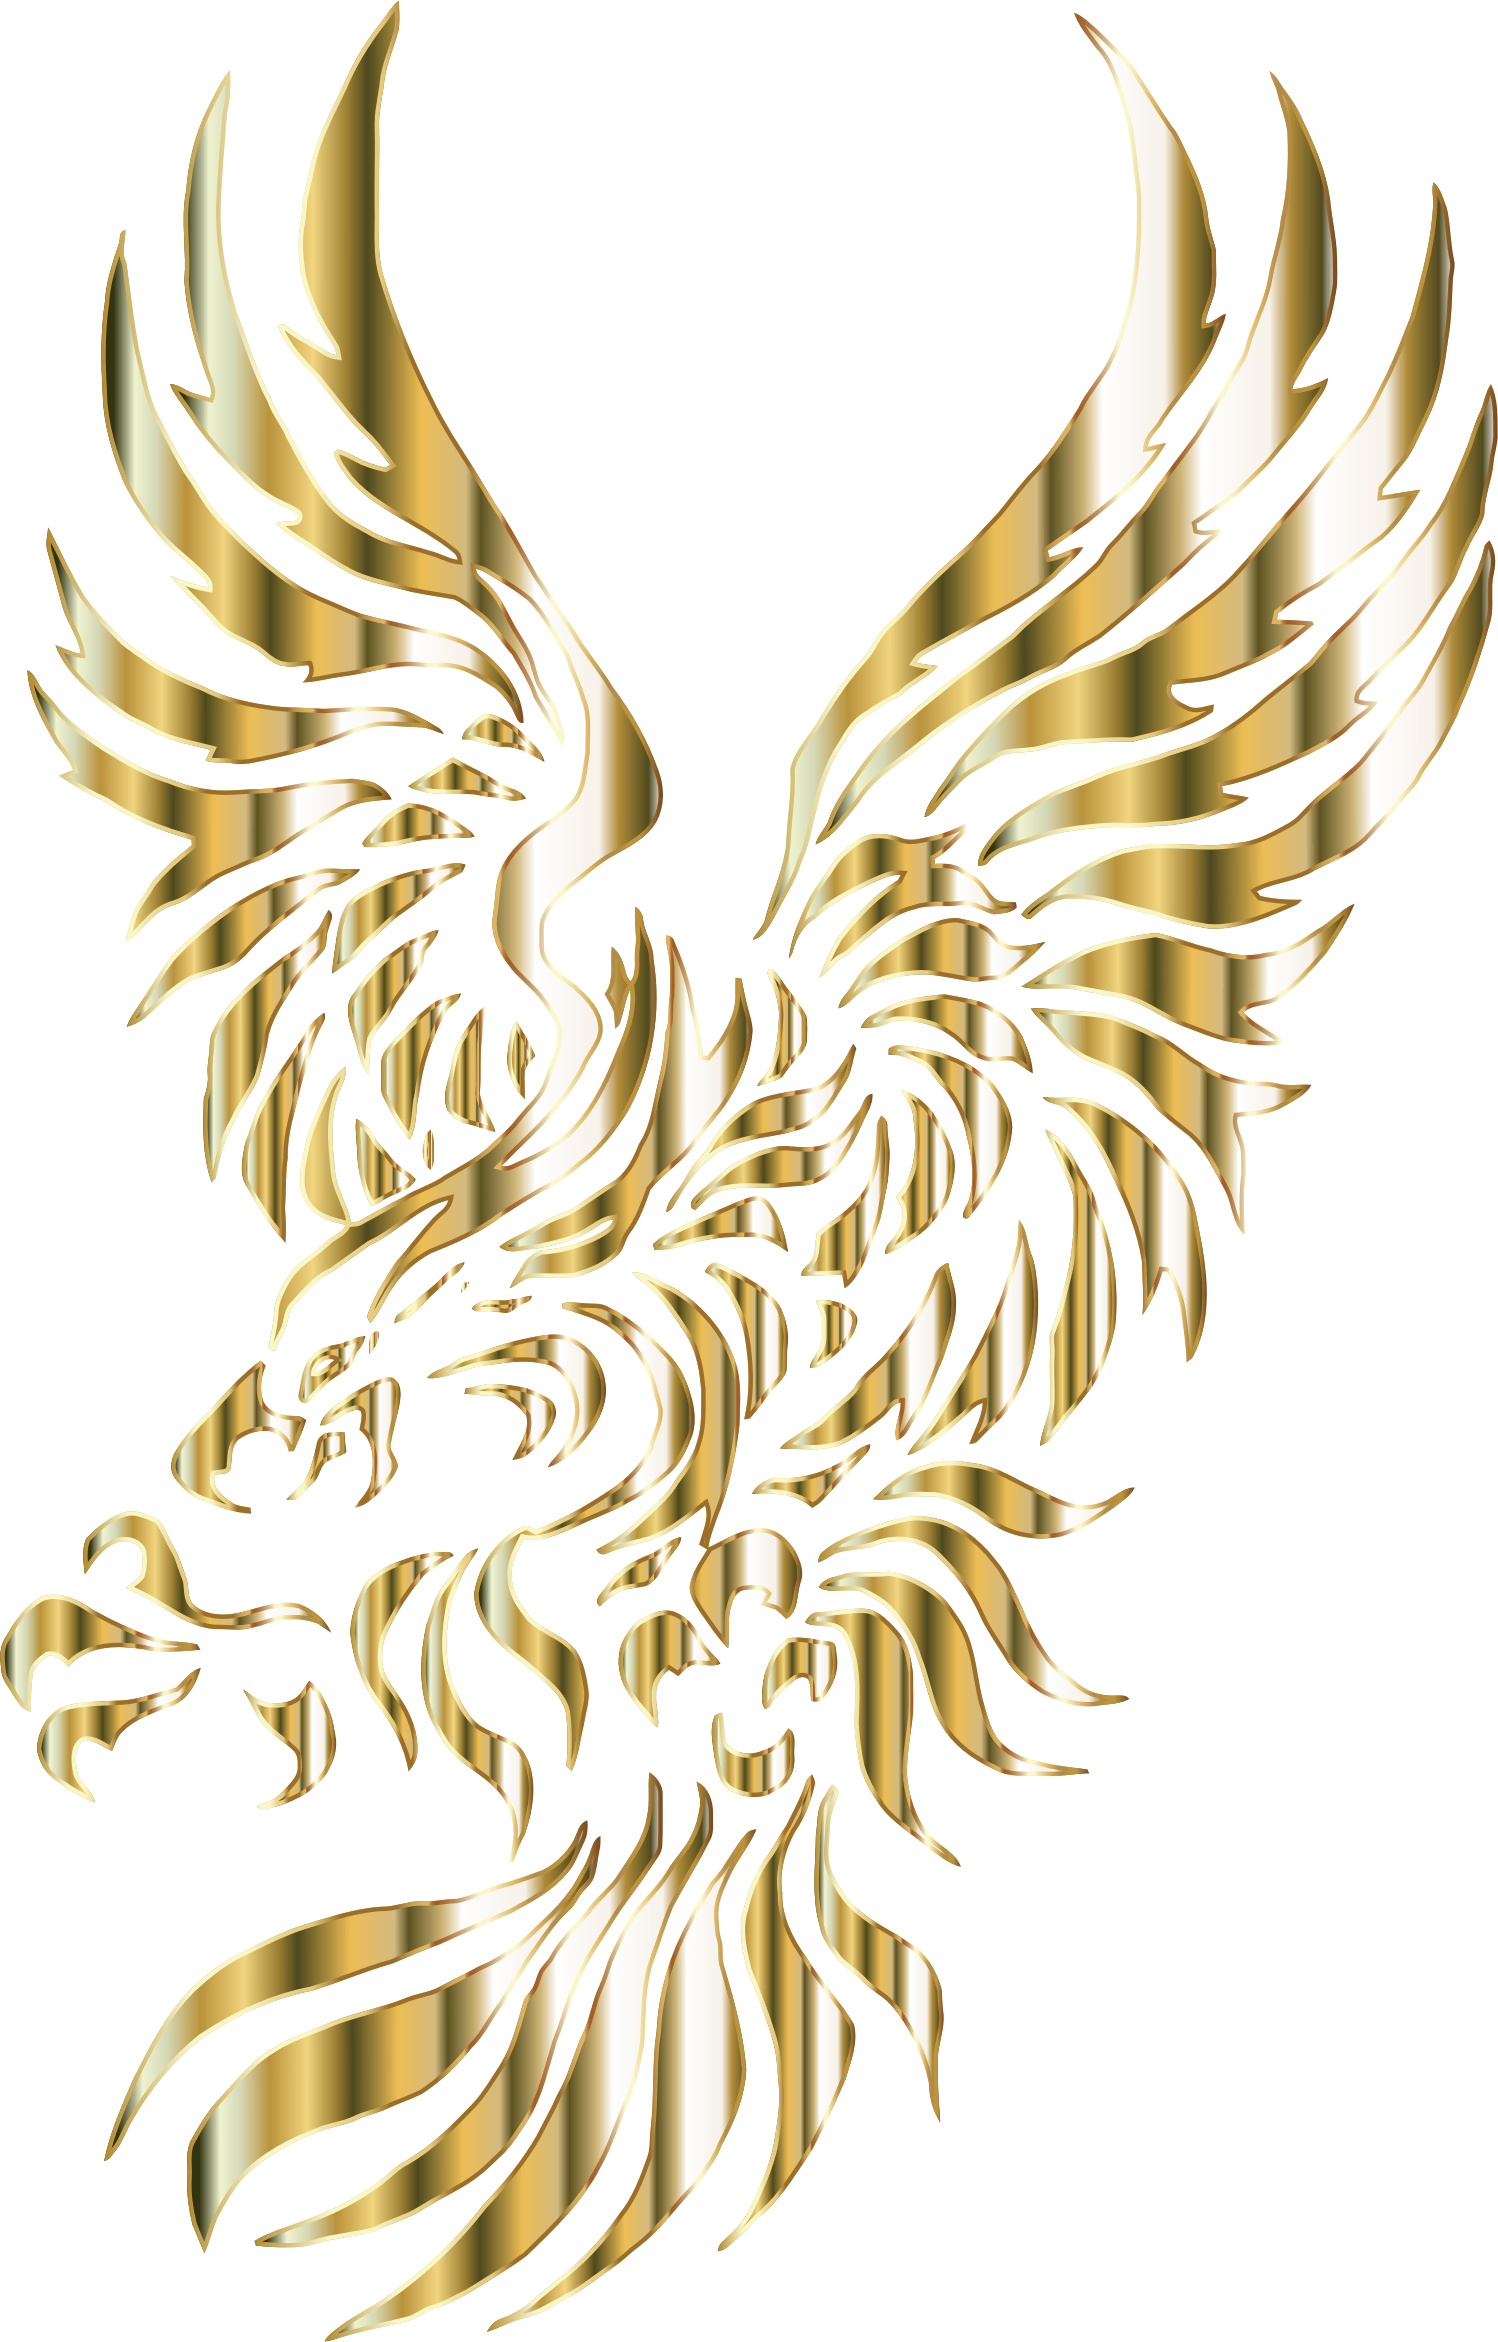 Chromatic Tribal Eagle 2 11 No Background by GDJ